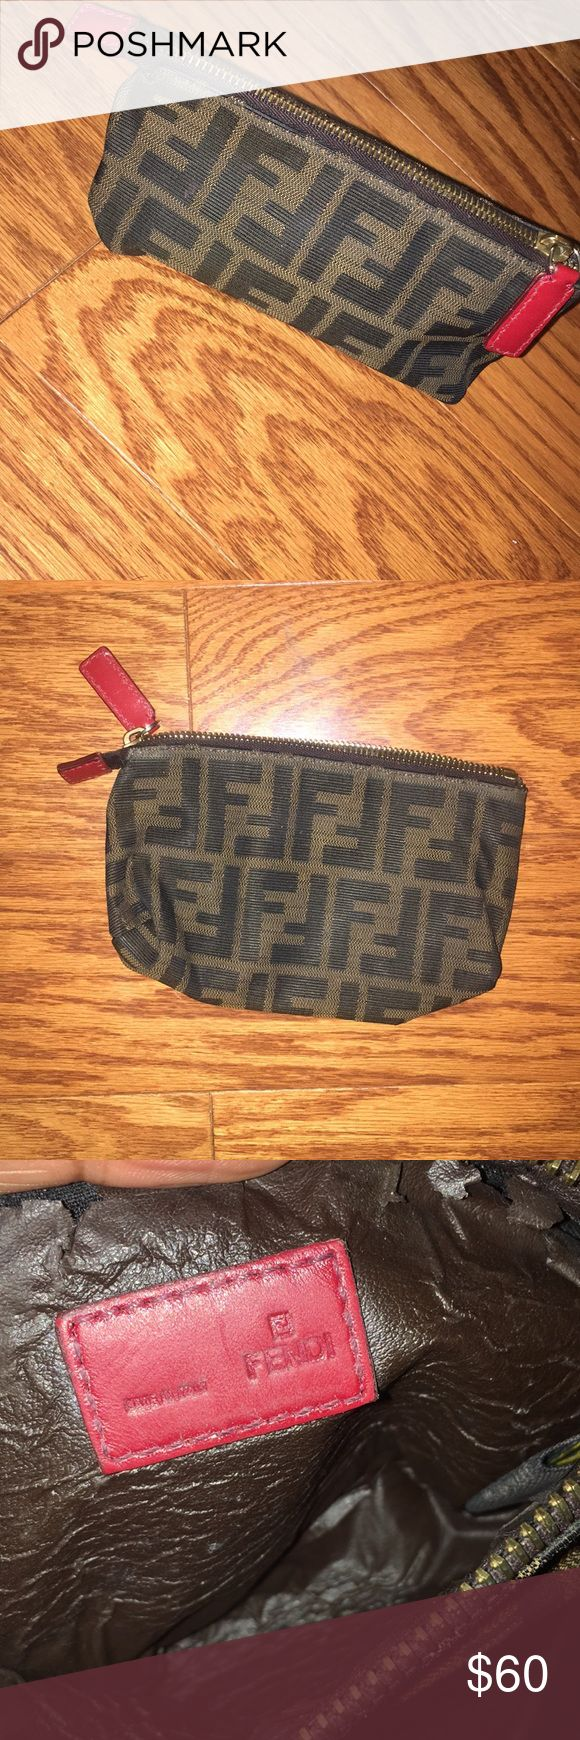 Fendi Makeup Bag Fendi Makeup Bag Authentic Vintage Fendi